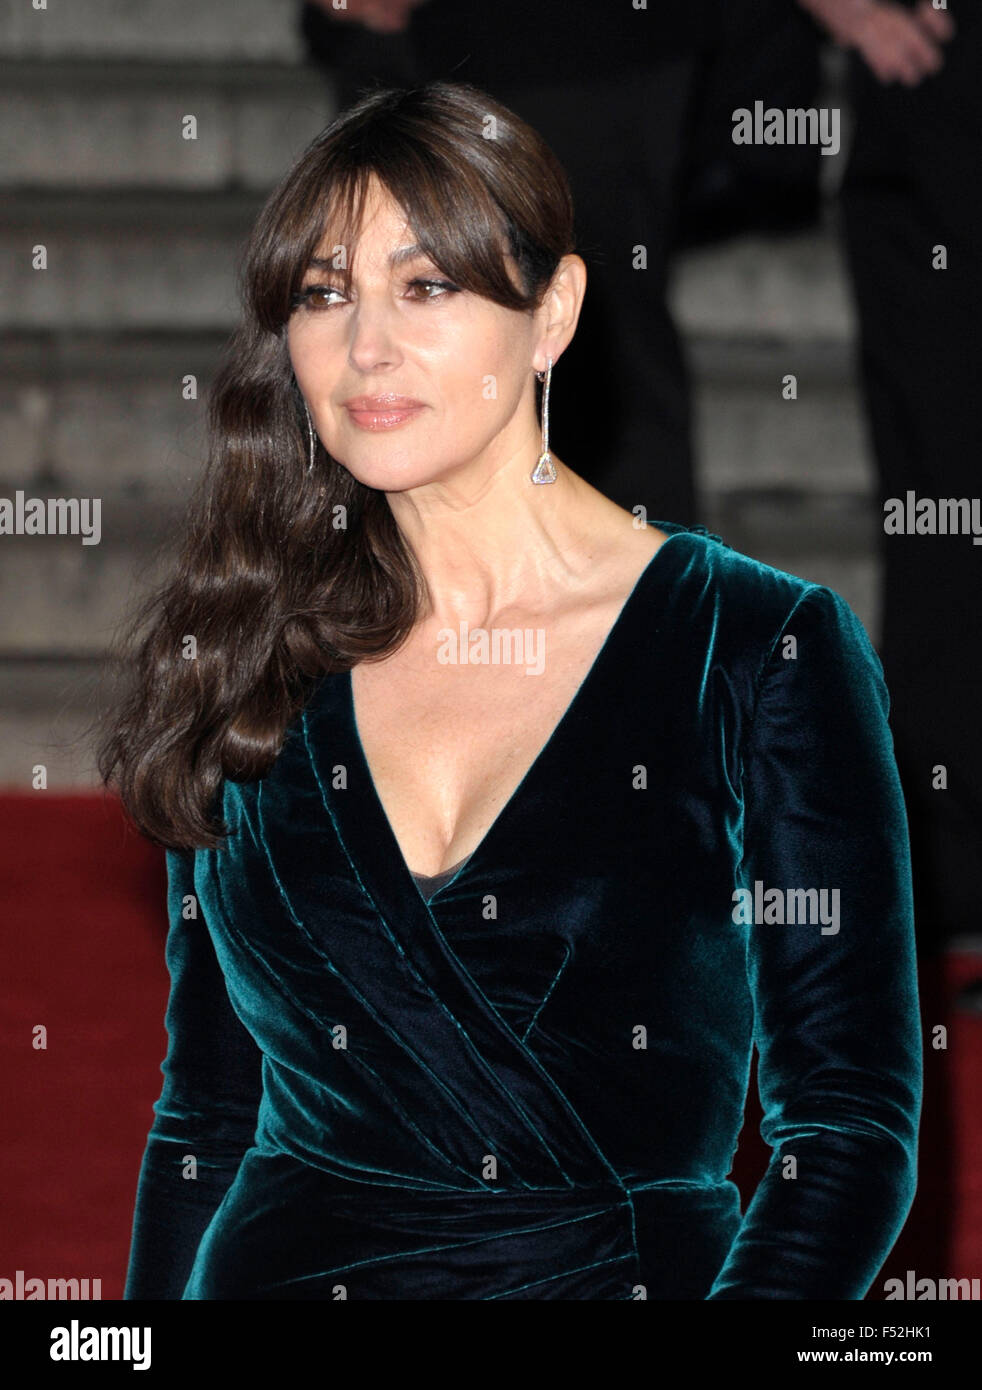 London, UK. 26th October, 2015.  Monica Bellucci attending the Royal Film Performance at the World Premiere of SPECTRE - Stock Image